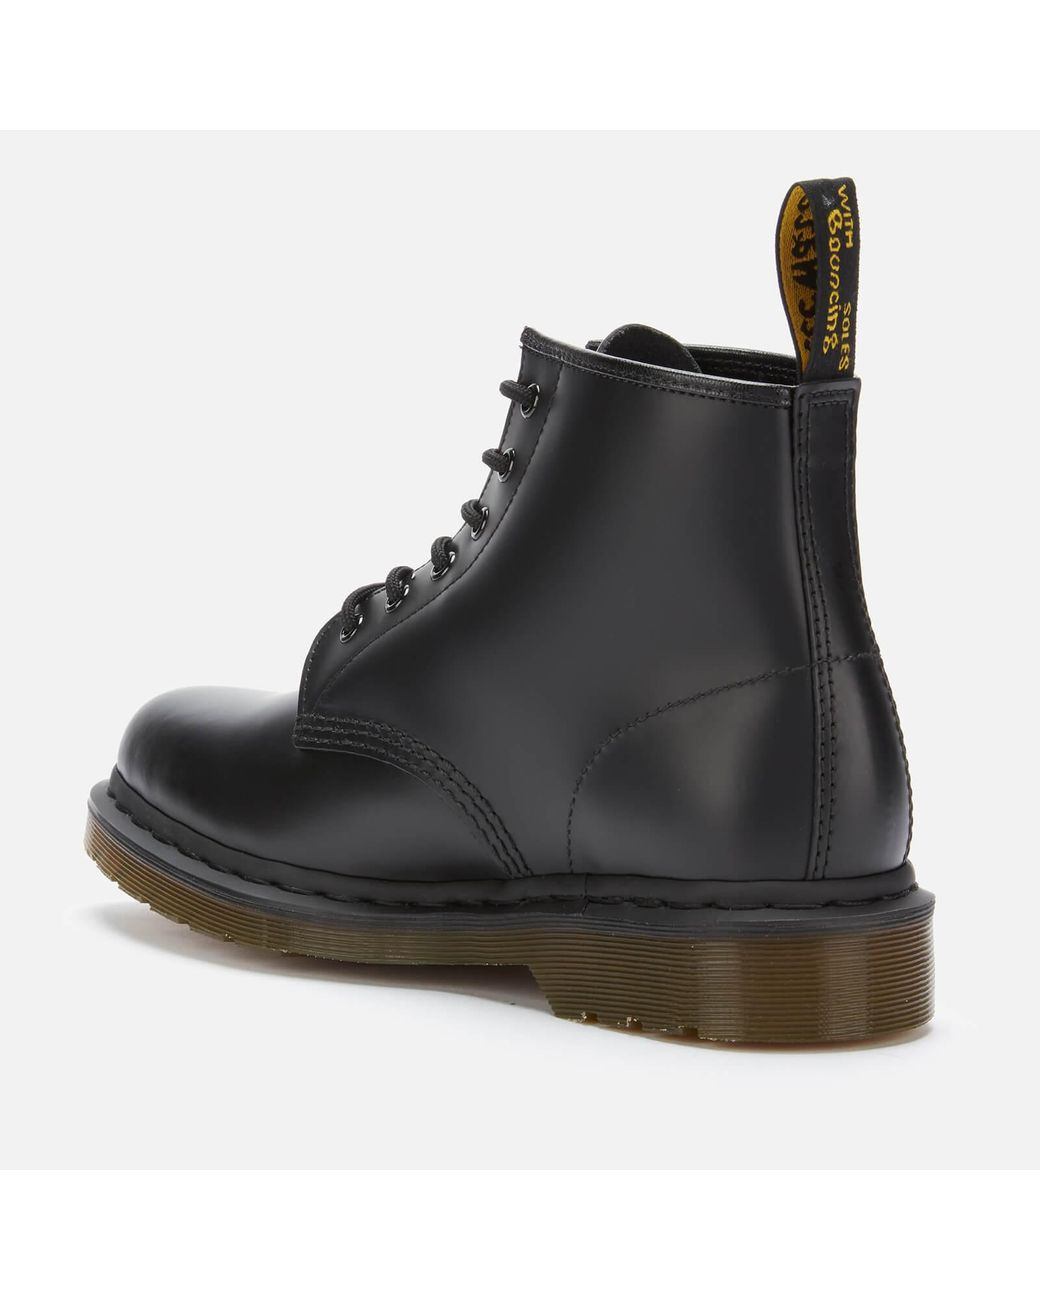 dollaro Americano Nonno Insegnamento  Dr. Martens 101 Smooth Leather 6-eye Boots in Black - Save 6% - Lyst